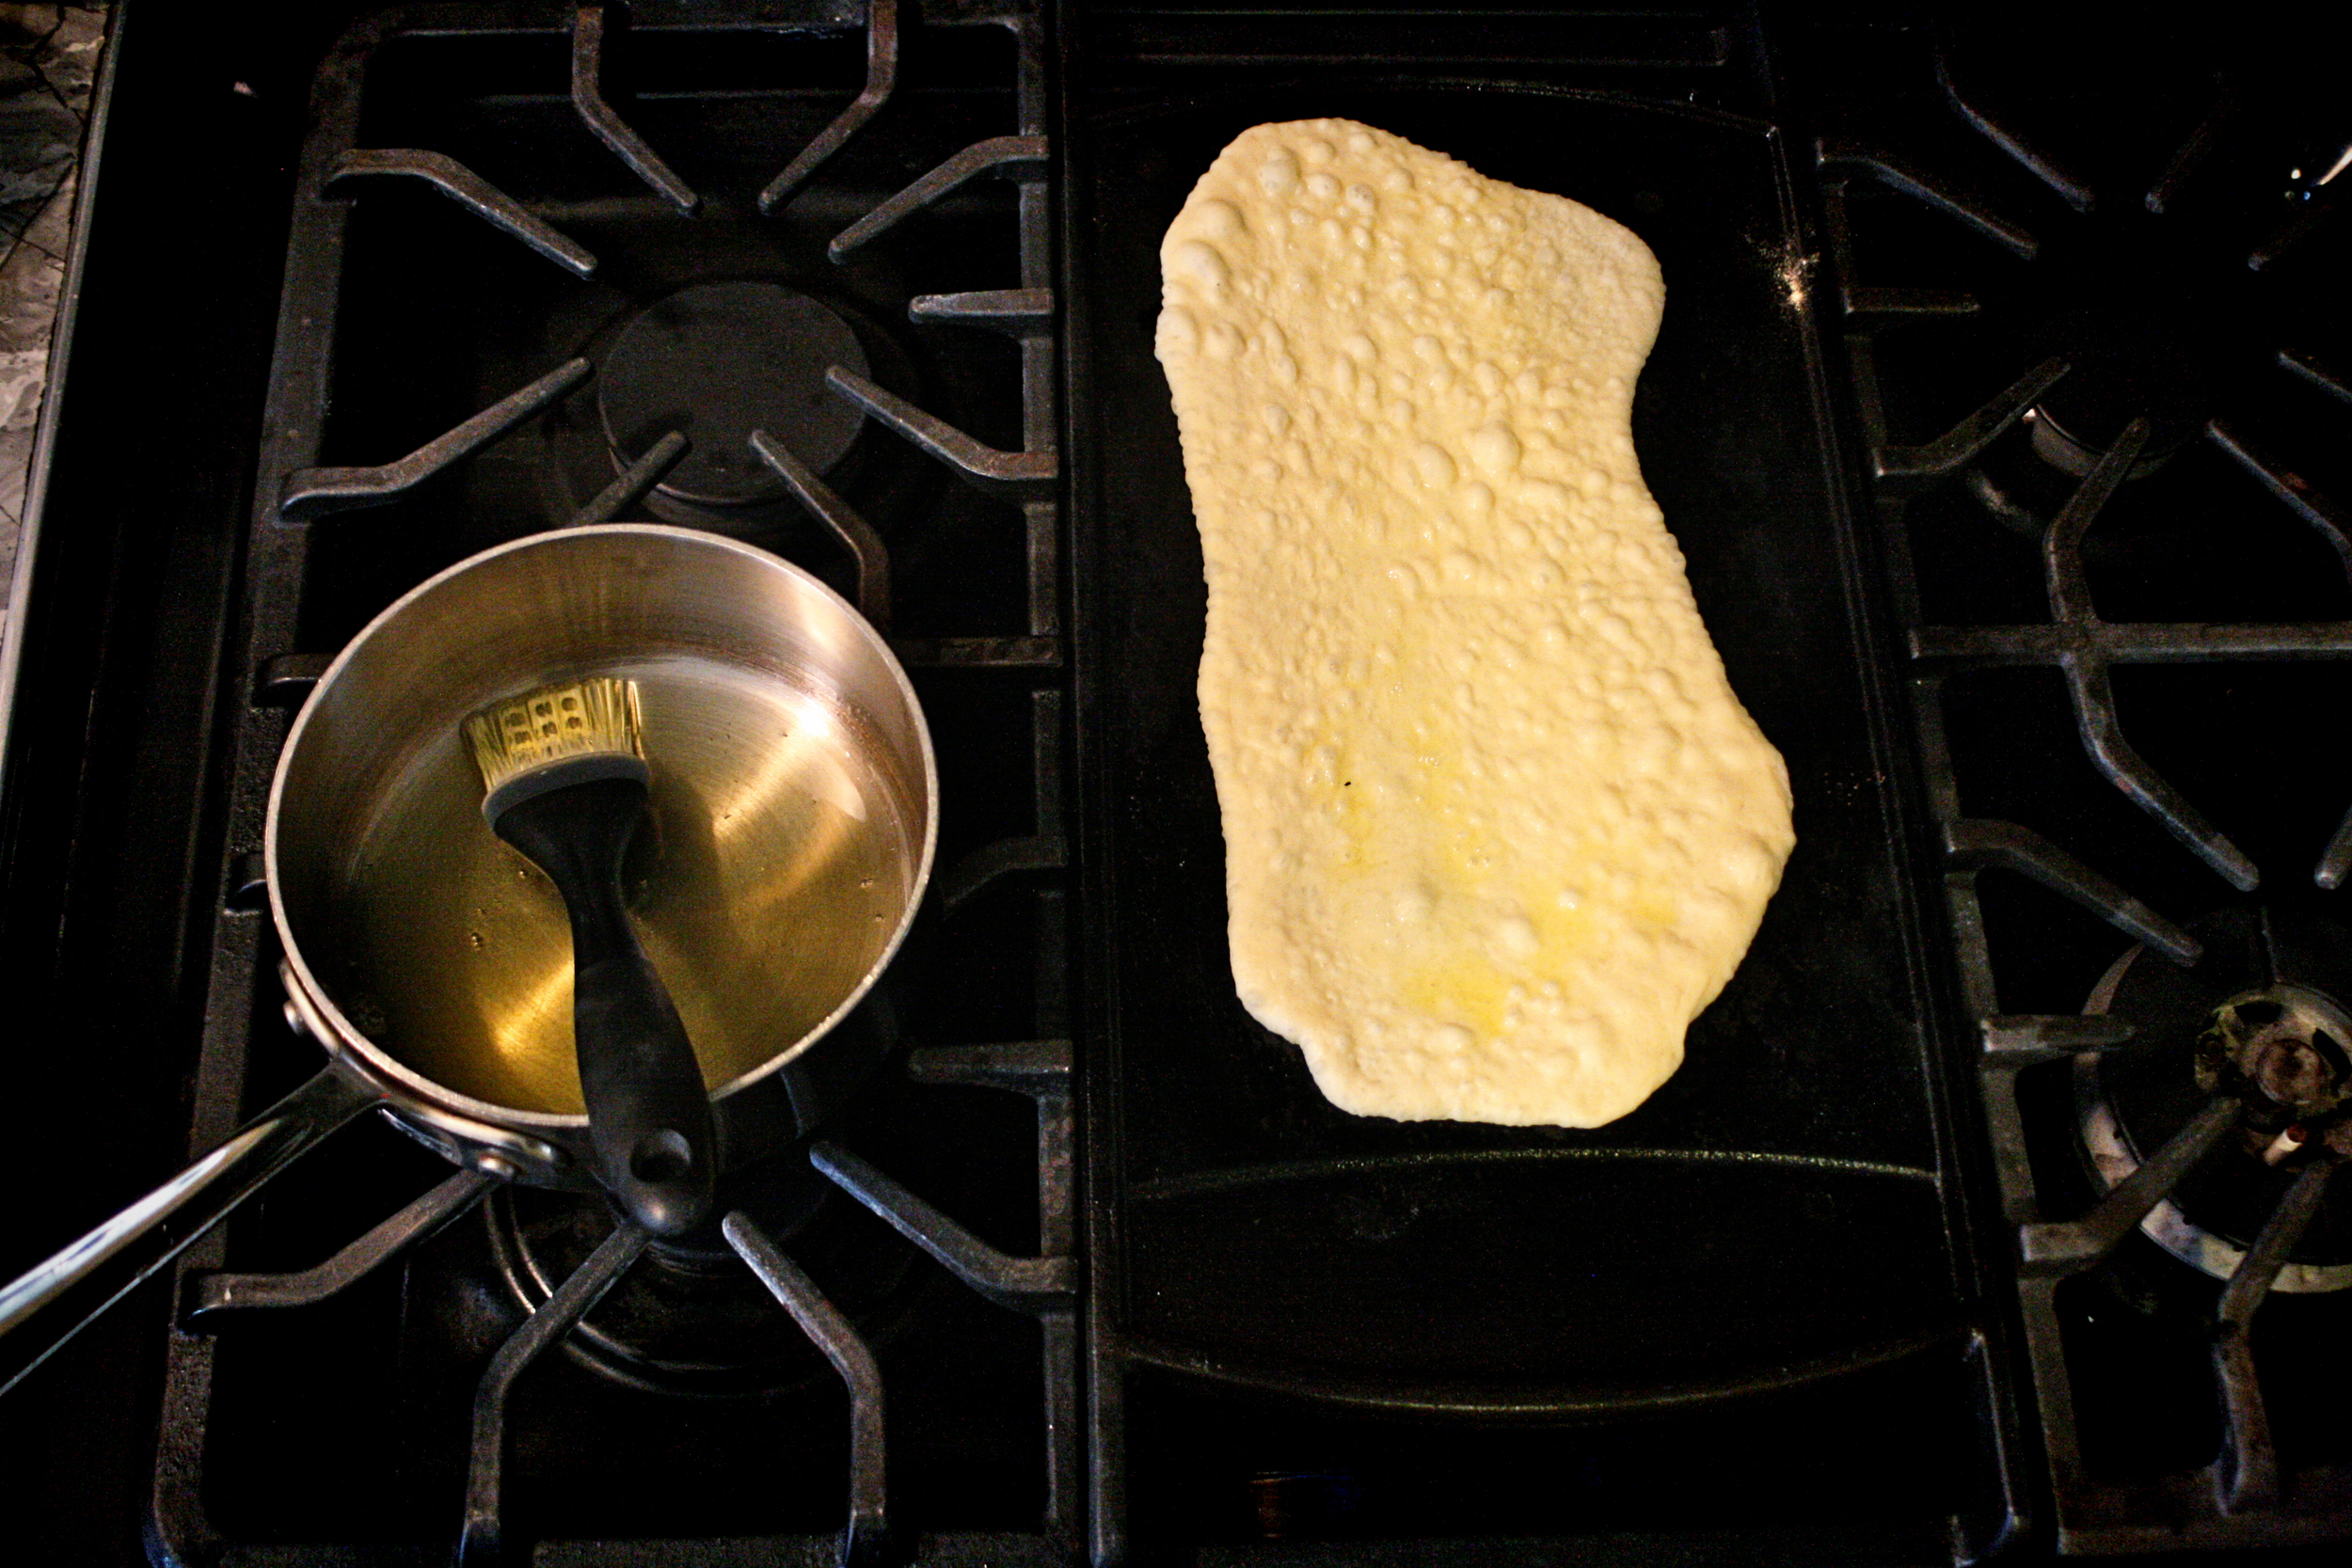 I have never used our grill to cook the naan. While I bet it would be smoky and delicious (and leave me with a cleaner kitchen!), I have never figured out where or how I would roll out the dough outside. So, I stick with the cast iron slab that fits over the long center burner of our stove. I imagine a cast iron pan would work just as well; you would simply need to make sure you made the dough balls an appropriate size and shape to fit your pan.